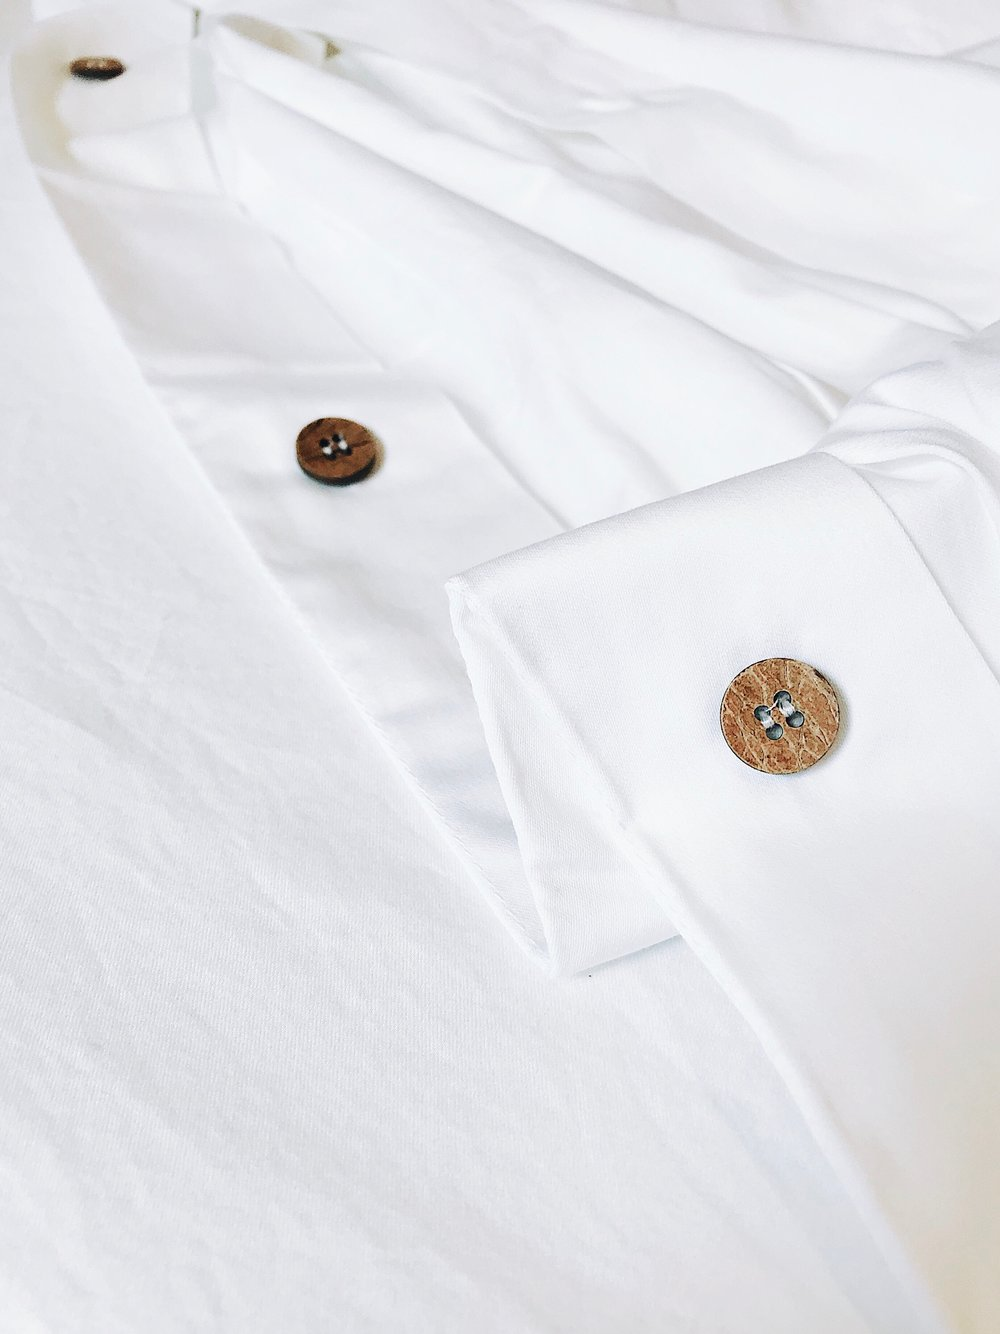 Creating a Less-Toxic Home Environment: Coyuchi Organic Duvet Cover and Sheets | janny: organically.